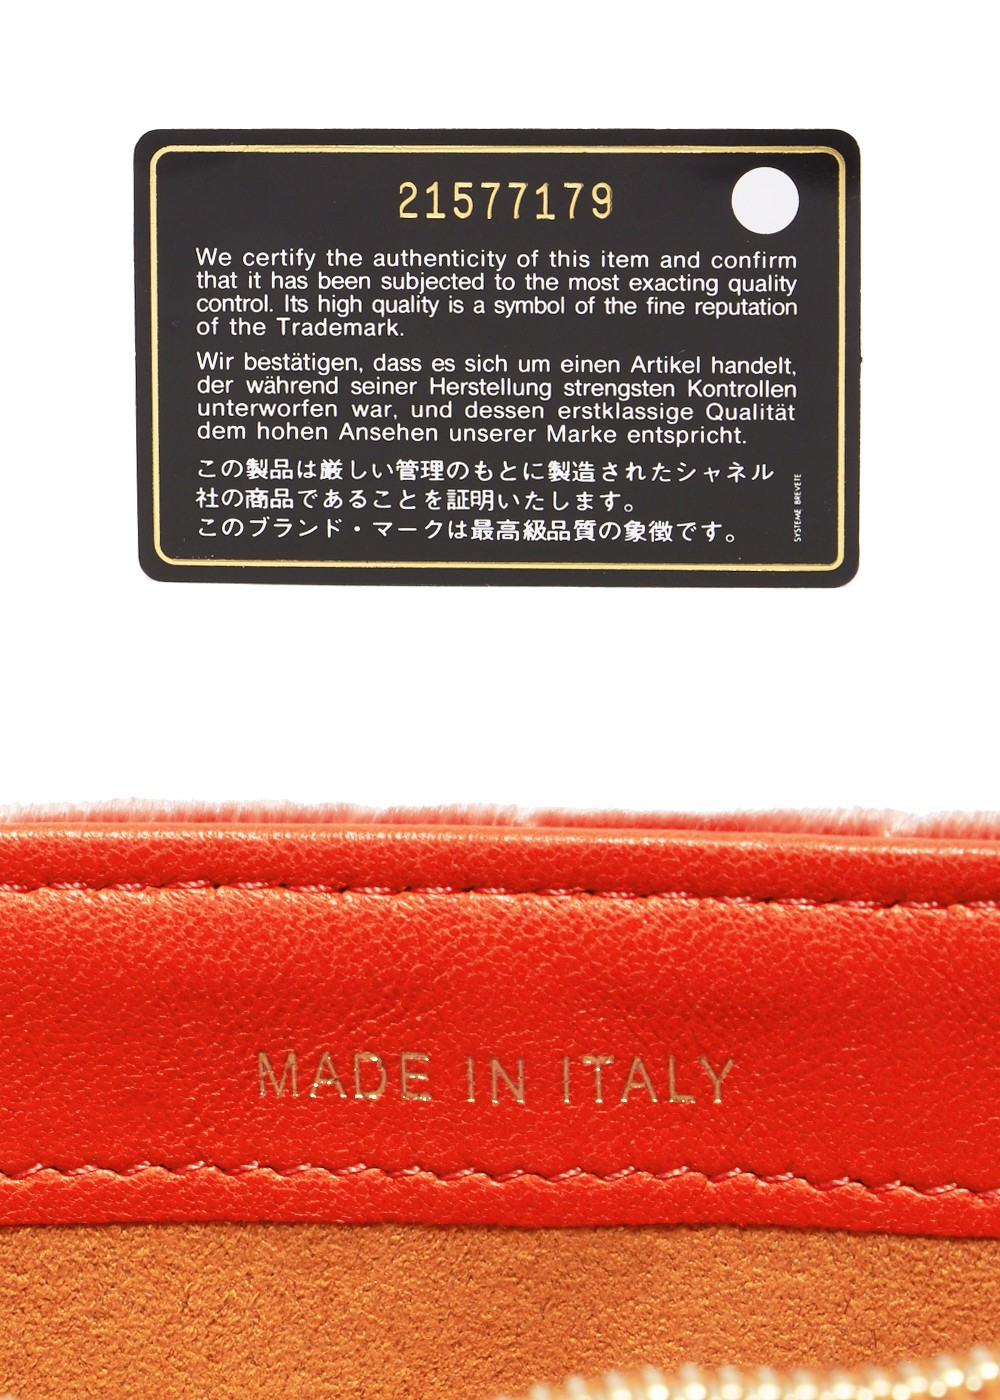 CHANEL チェーンウォレット ベロア |OTHER|レディース財布|VINTAGE BRAND COLLECTION